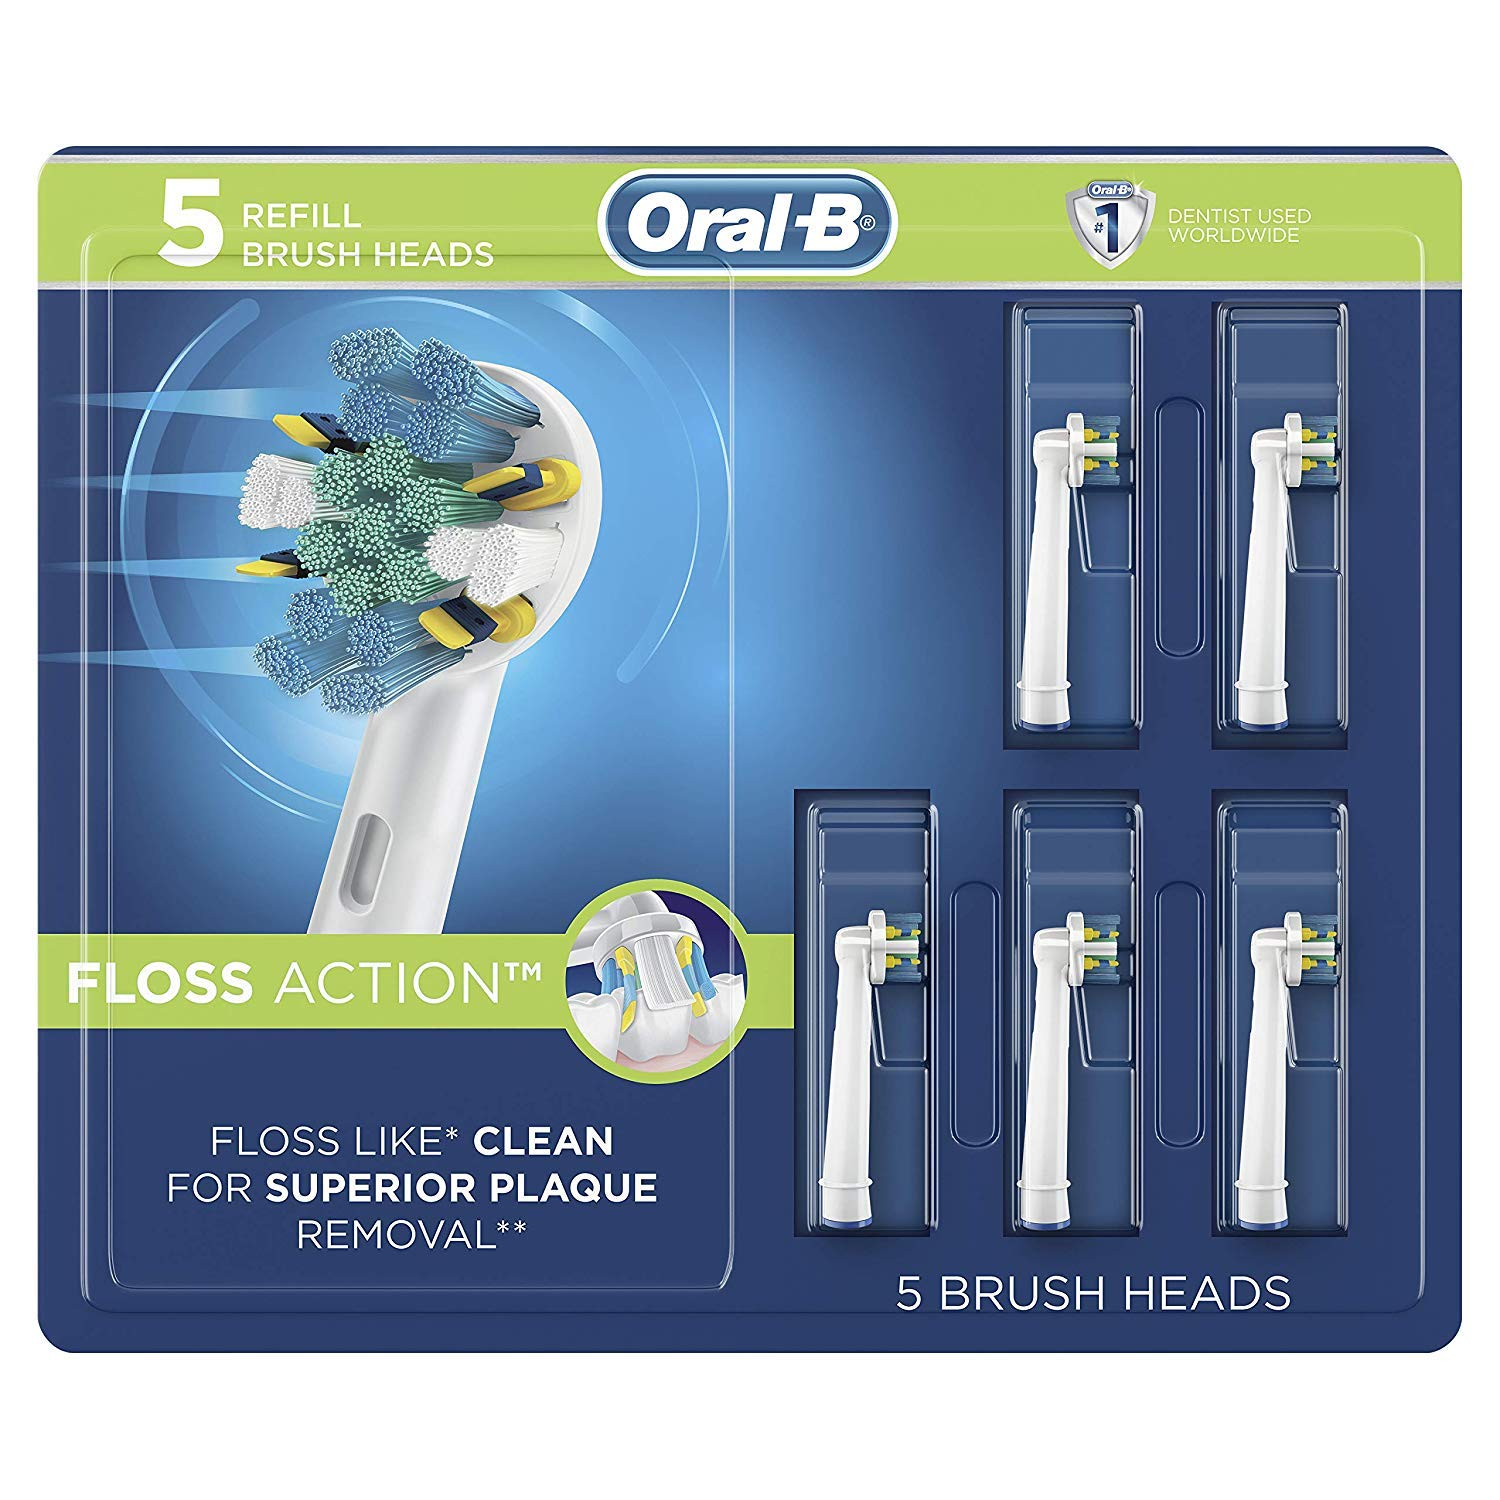 Oral-B FlossAction Electric Toothbrush Replacement Brush Heads, 5 Count